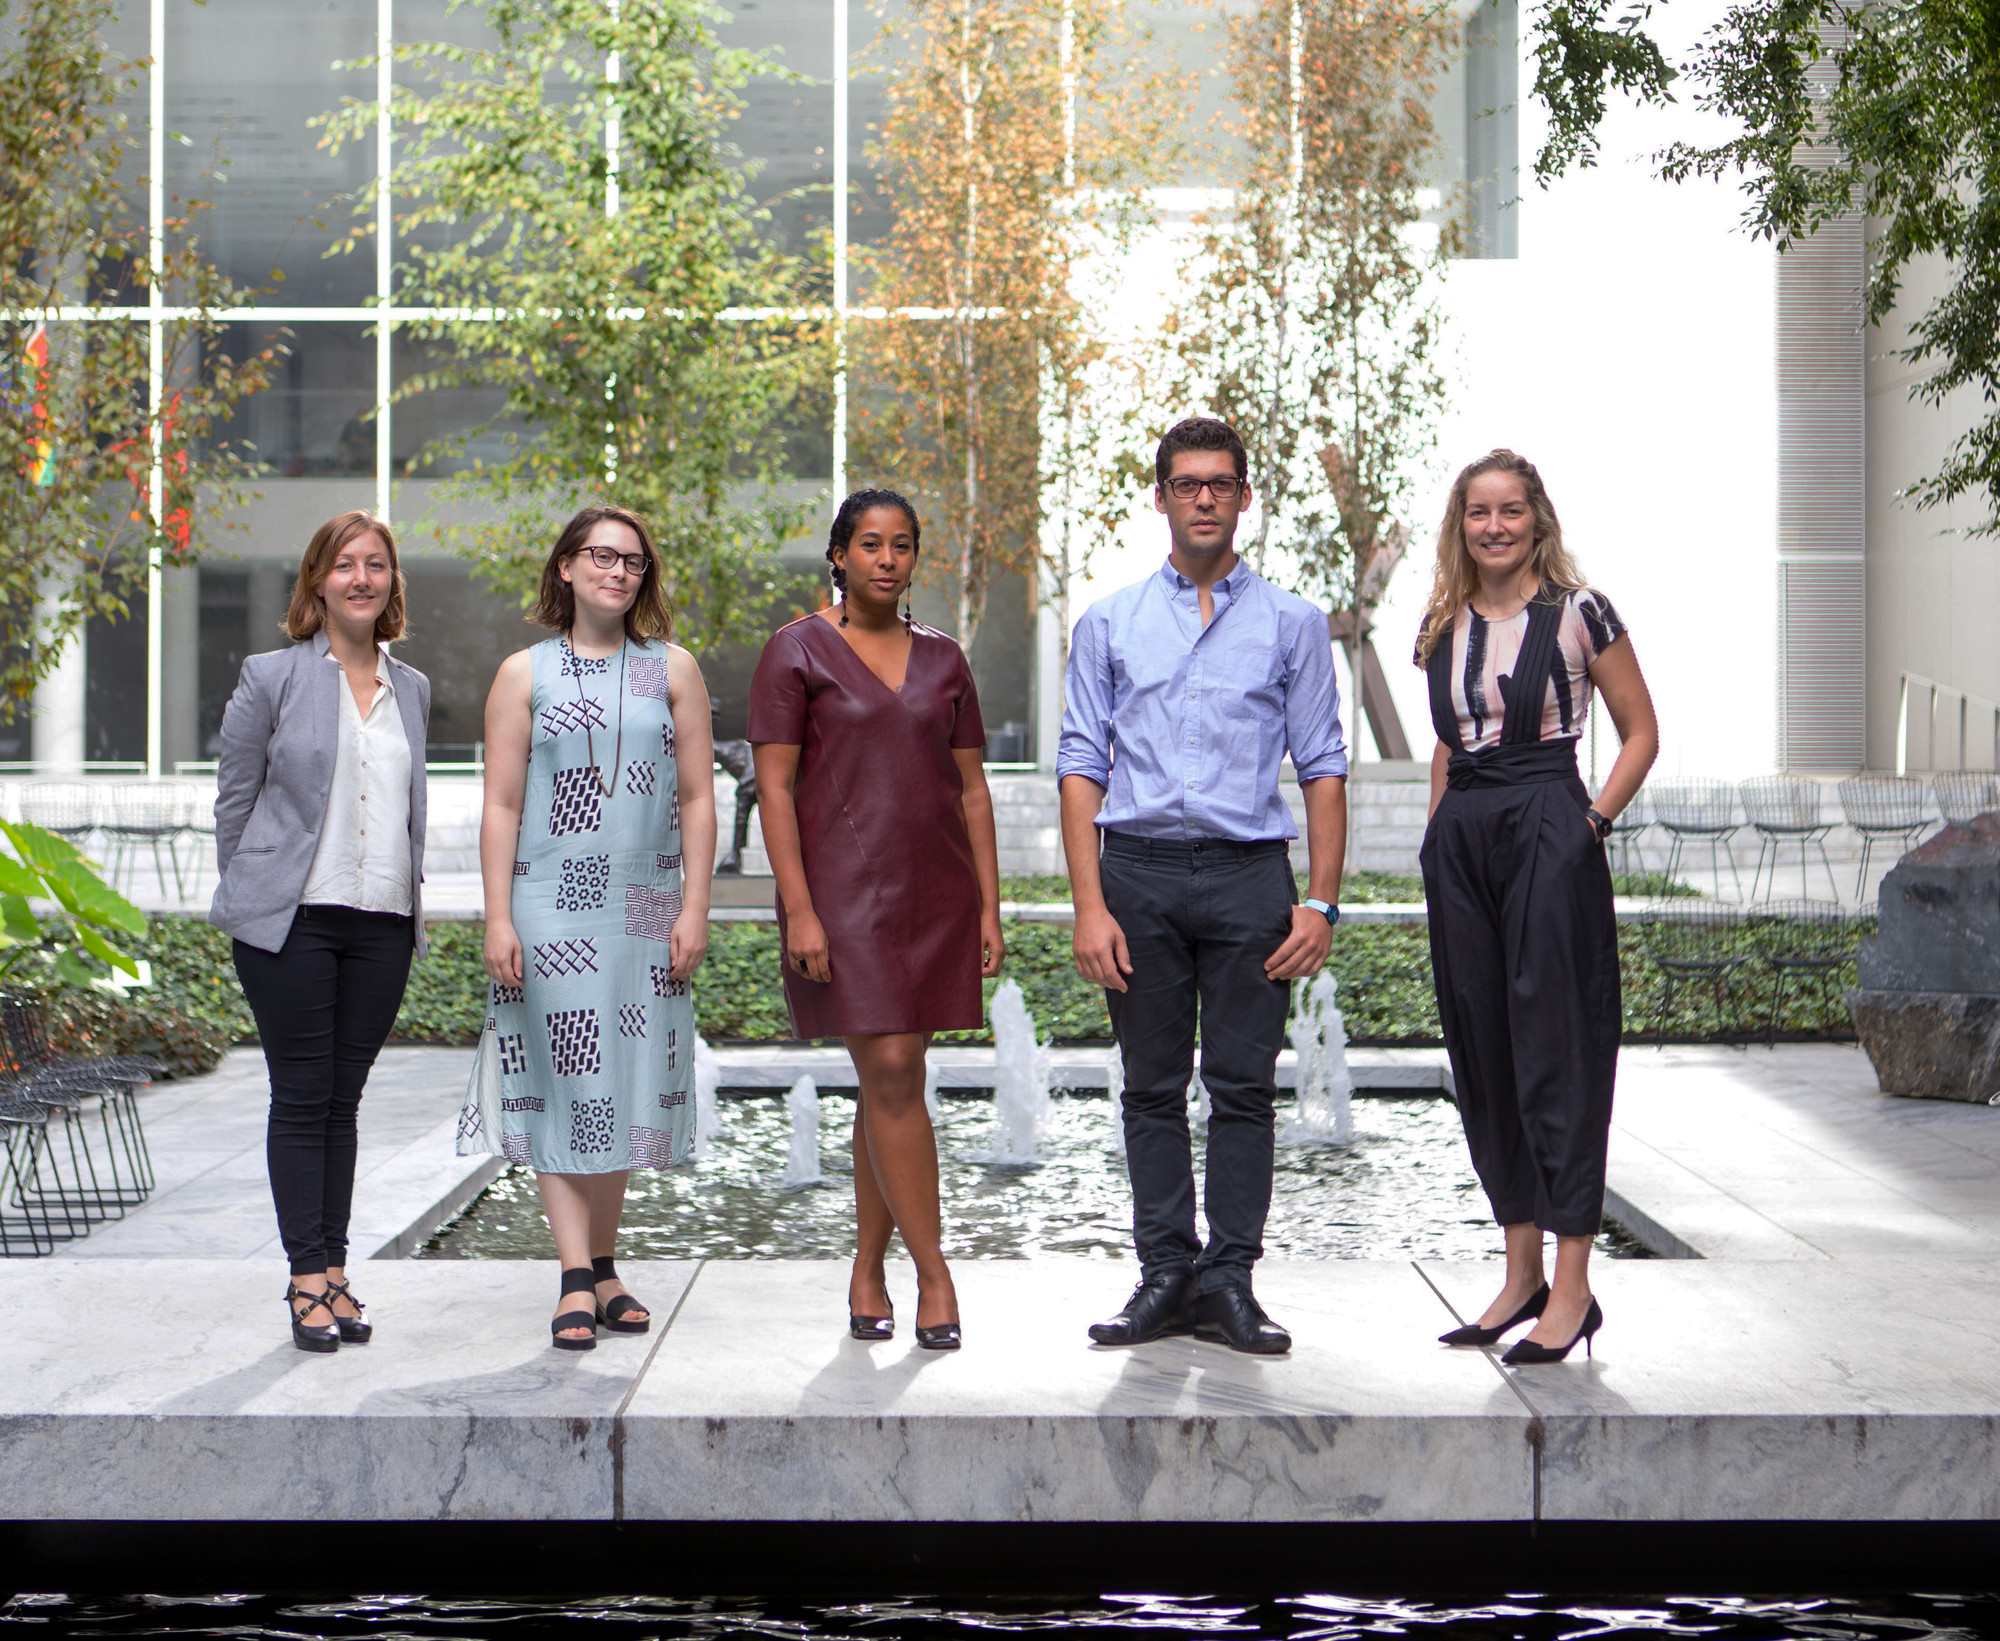 2017-18 MRC Fellows, from left: Julia Bozer, Liz Donato, Vivian Crockett, Theodossis Issaias, and Erica Cooke. Photo: Marcin J. Muchalski, Diamond Shot Studio